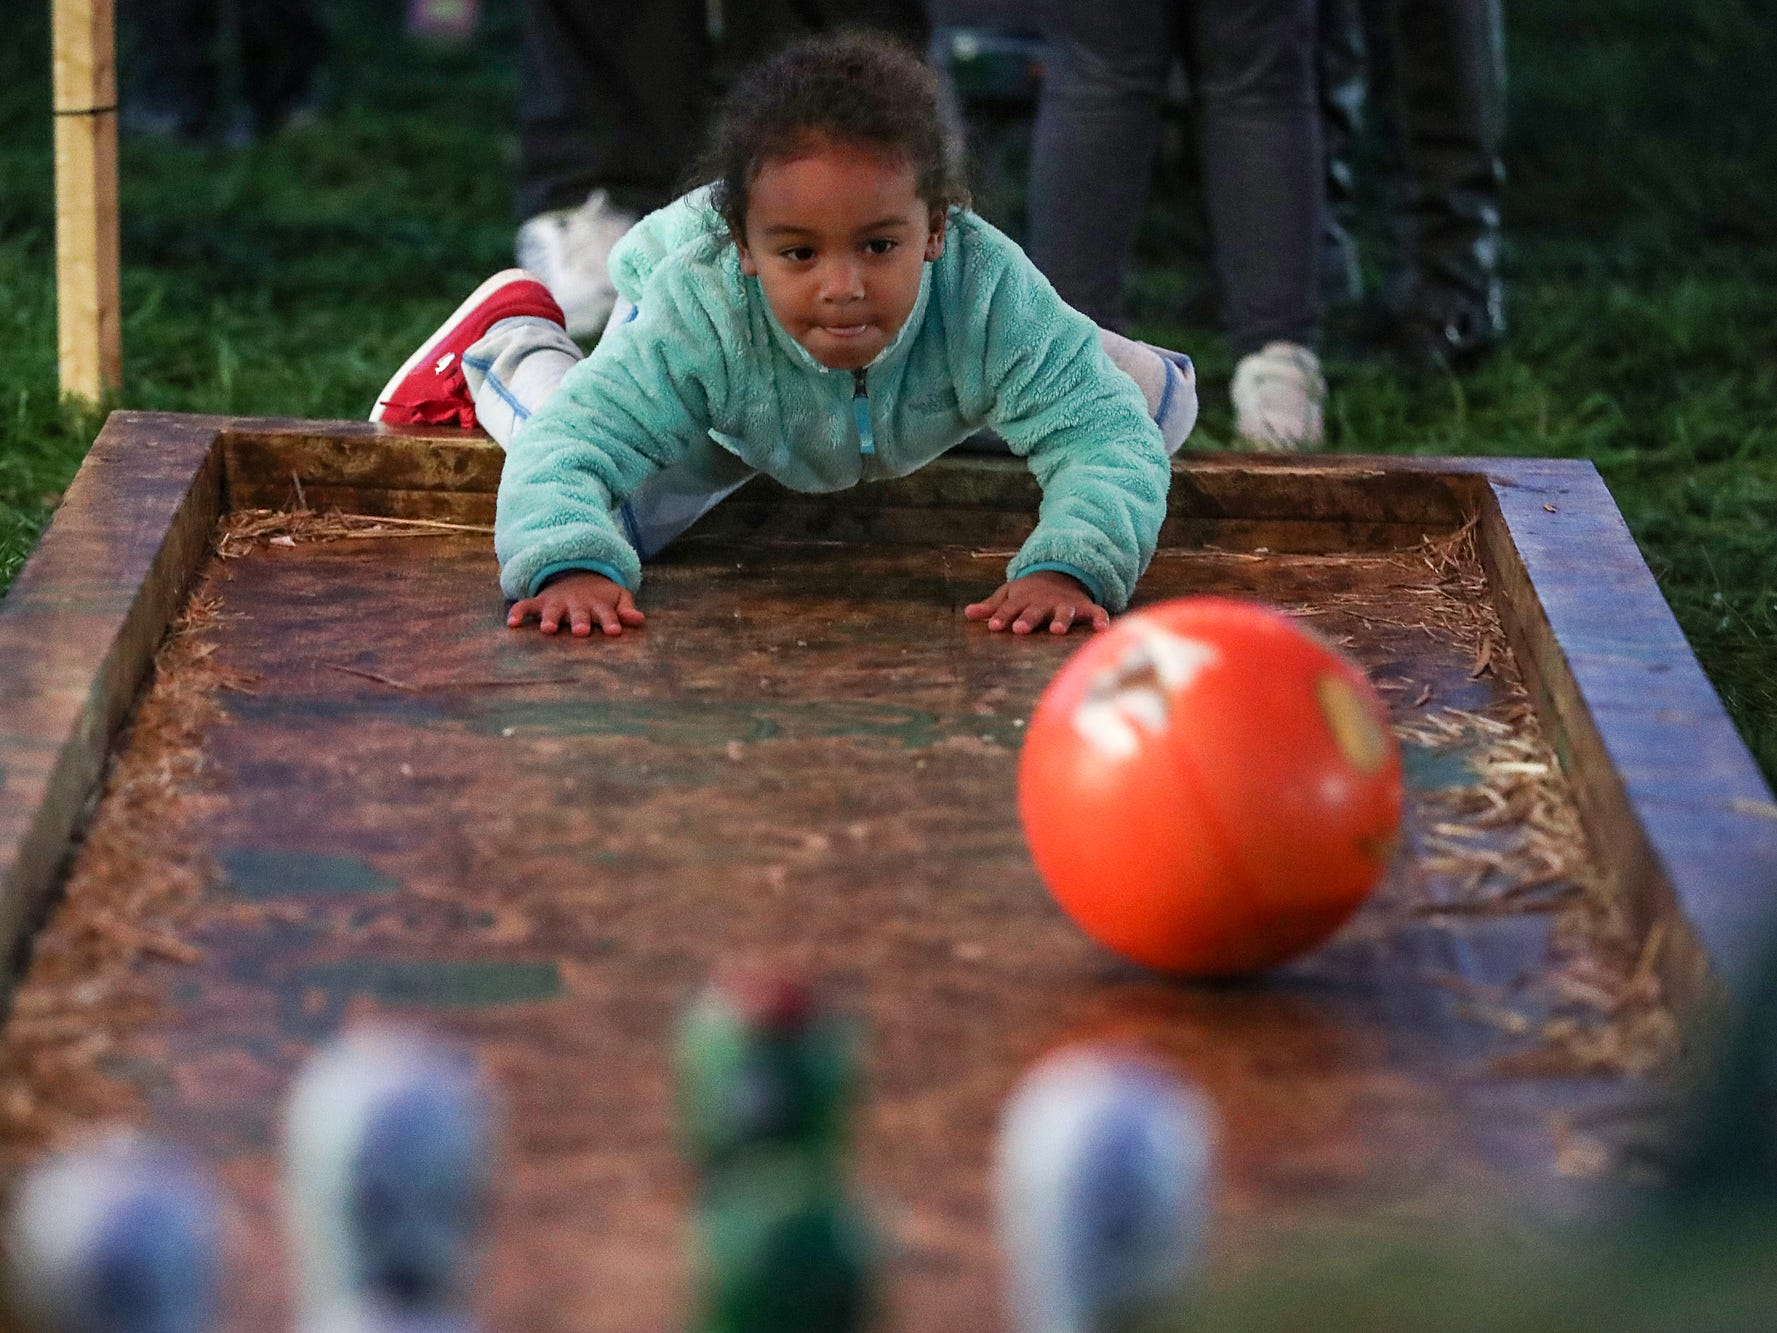 Skylar Johnson, 5, hoists a bowling ball toward pins on opening night of the annual Headless Horseman Halloween festival at Conner Prairie in Fishers, Ind., Thursday, Oct. 11, 2018. The festival is held from 6 to 9 p.m. every Thursday through Sunday, ending Oct. 28, 2018.